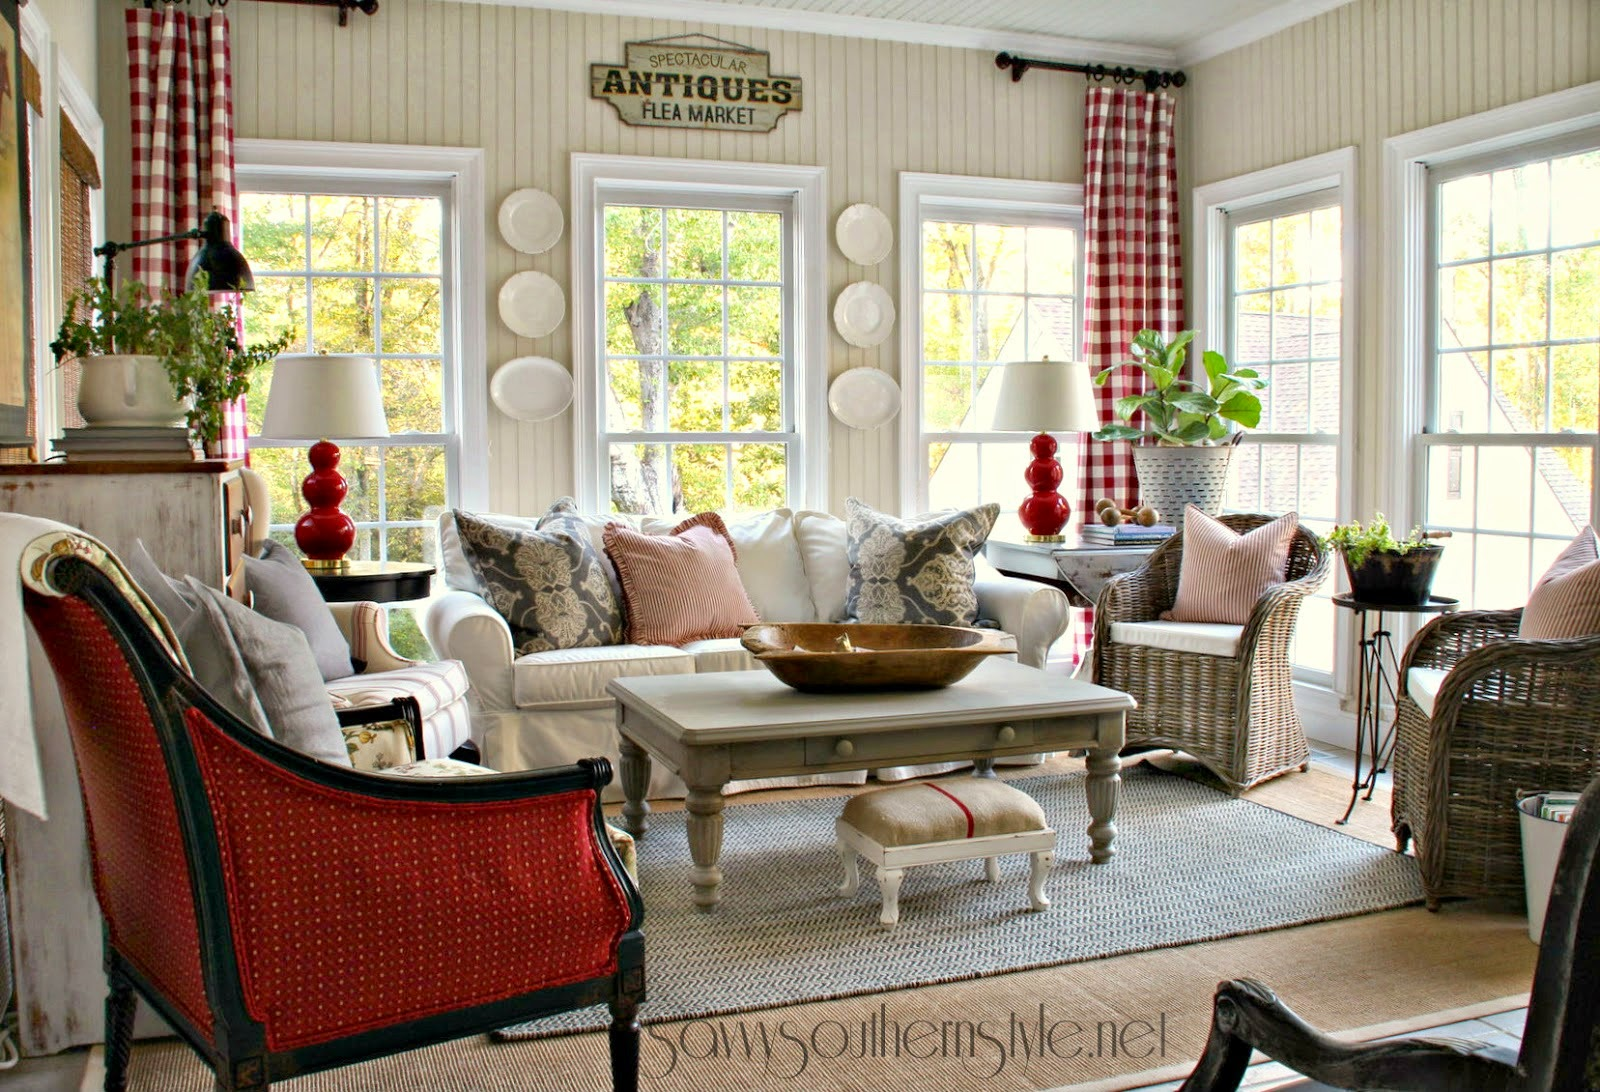 Savvy Southern Style : New Red & Gray Additions In The Sunroom